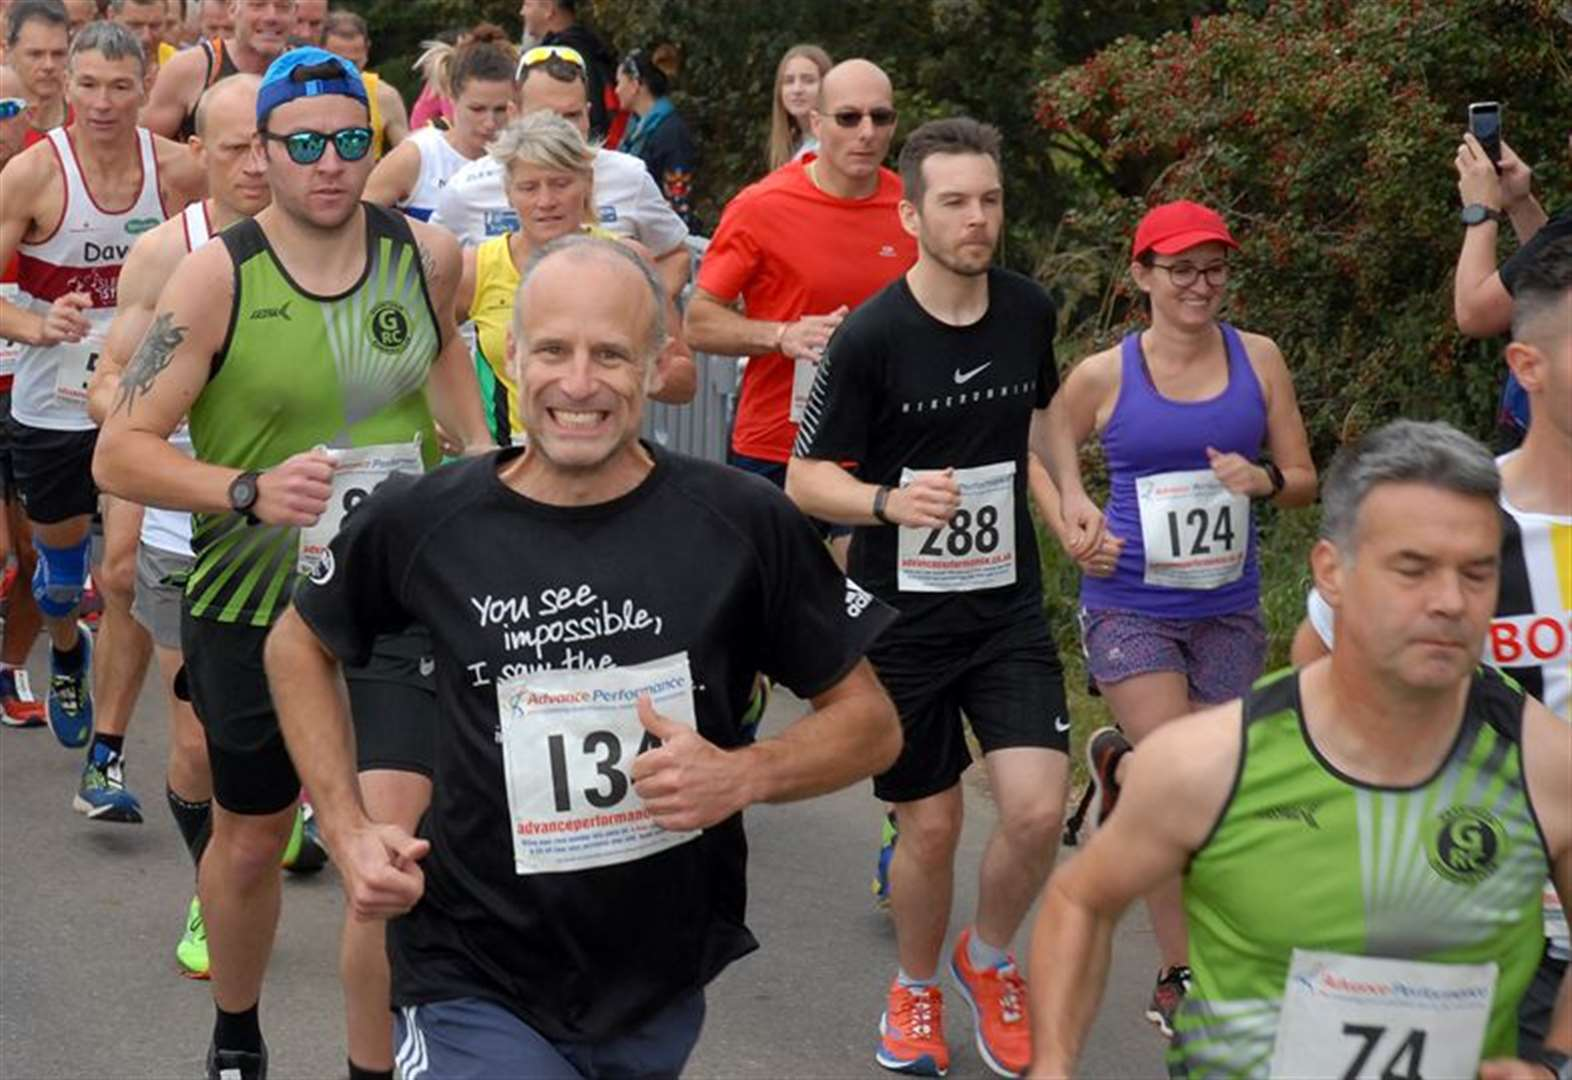 PHOTO GALLERY: Fantastic feedback for road race